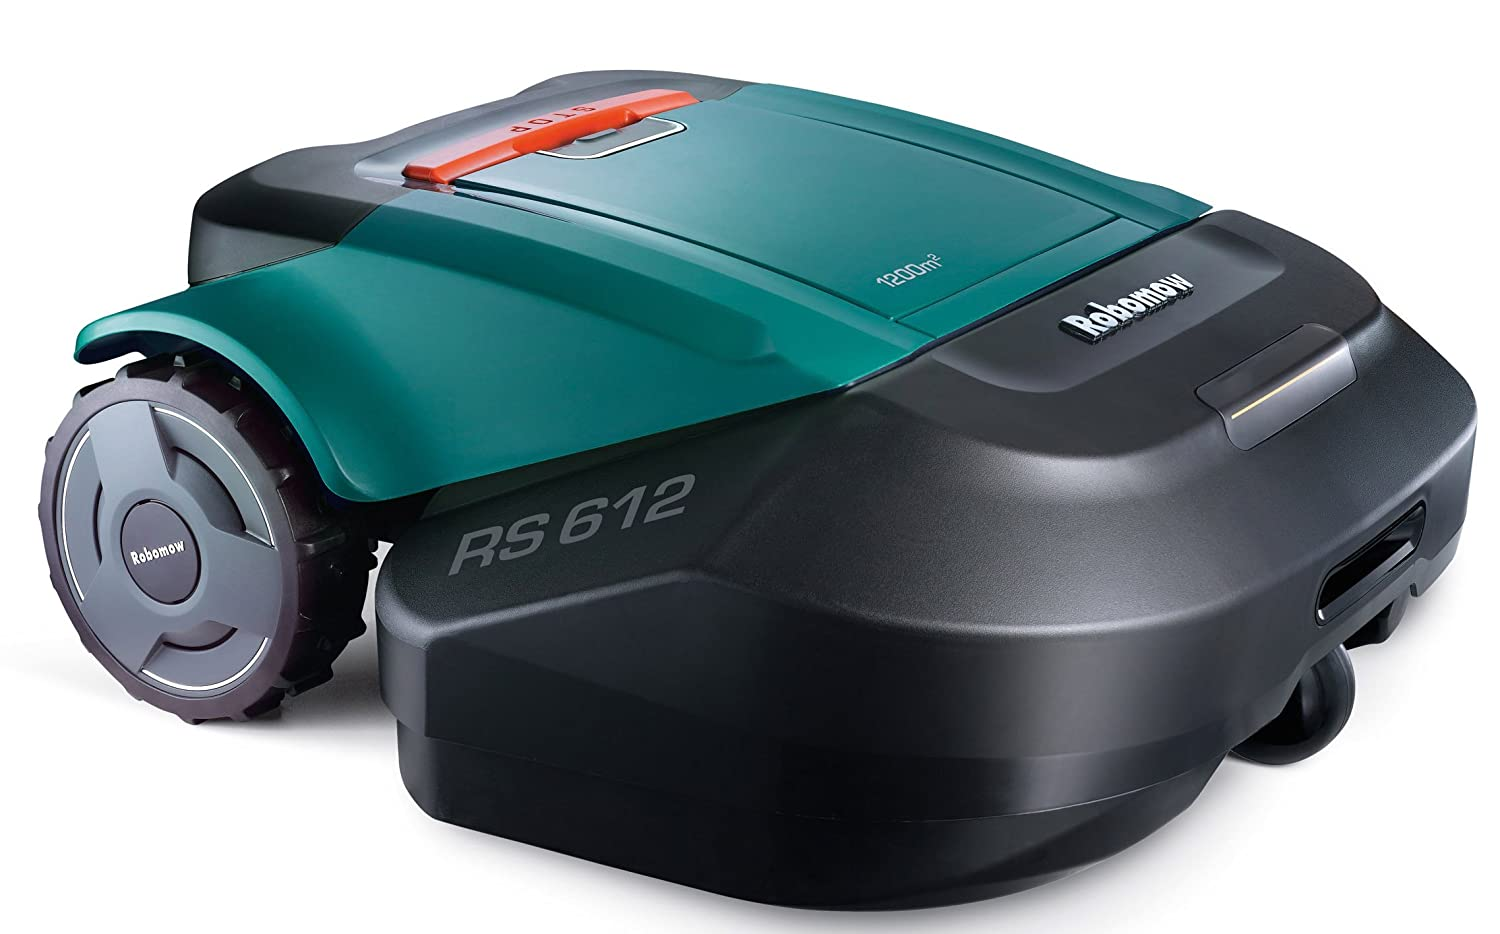 Robomow RS612 Robotic Lawn Mower, Home Automation